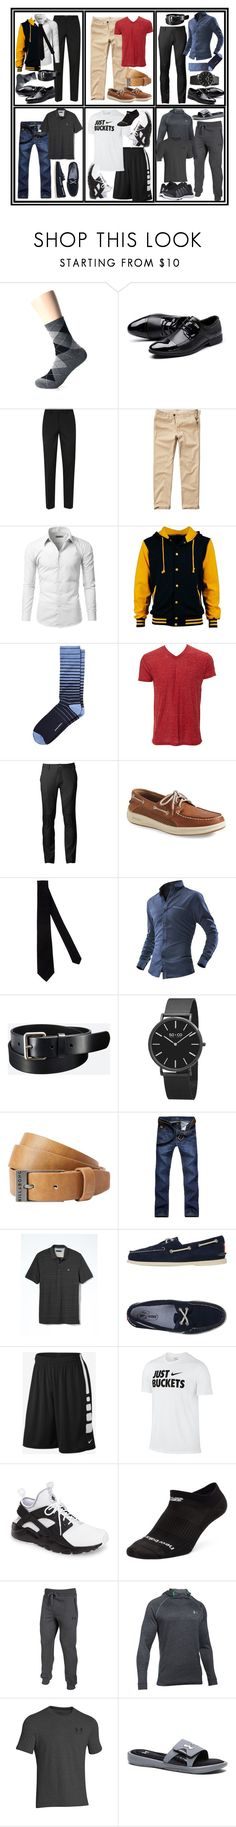 """""""Classic style for men"""" by a-gauche ❤ liked on Polyvore featuring Topman, Hollister Co., Doublju, Banana Republic, Simplex Apparel, Chor, Sperry, Armani Collezioni, Uniqlo and SO & CO"""